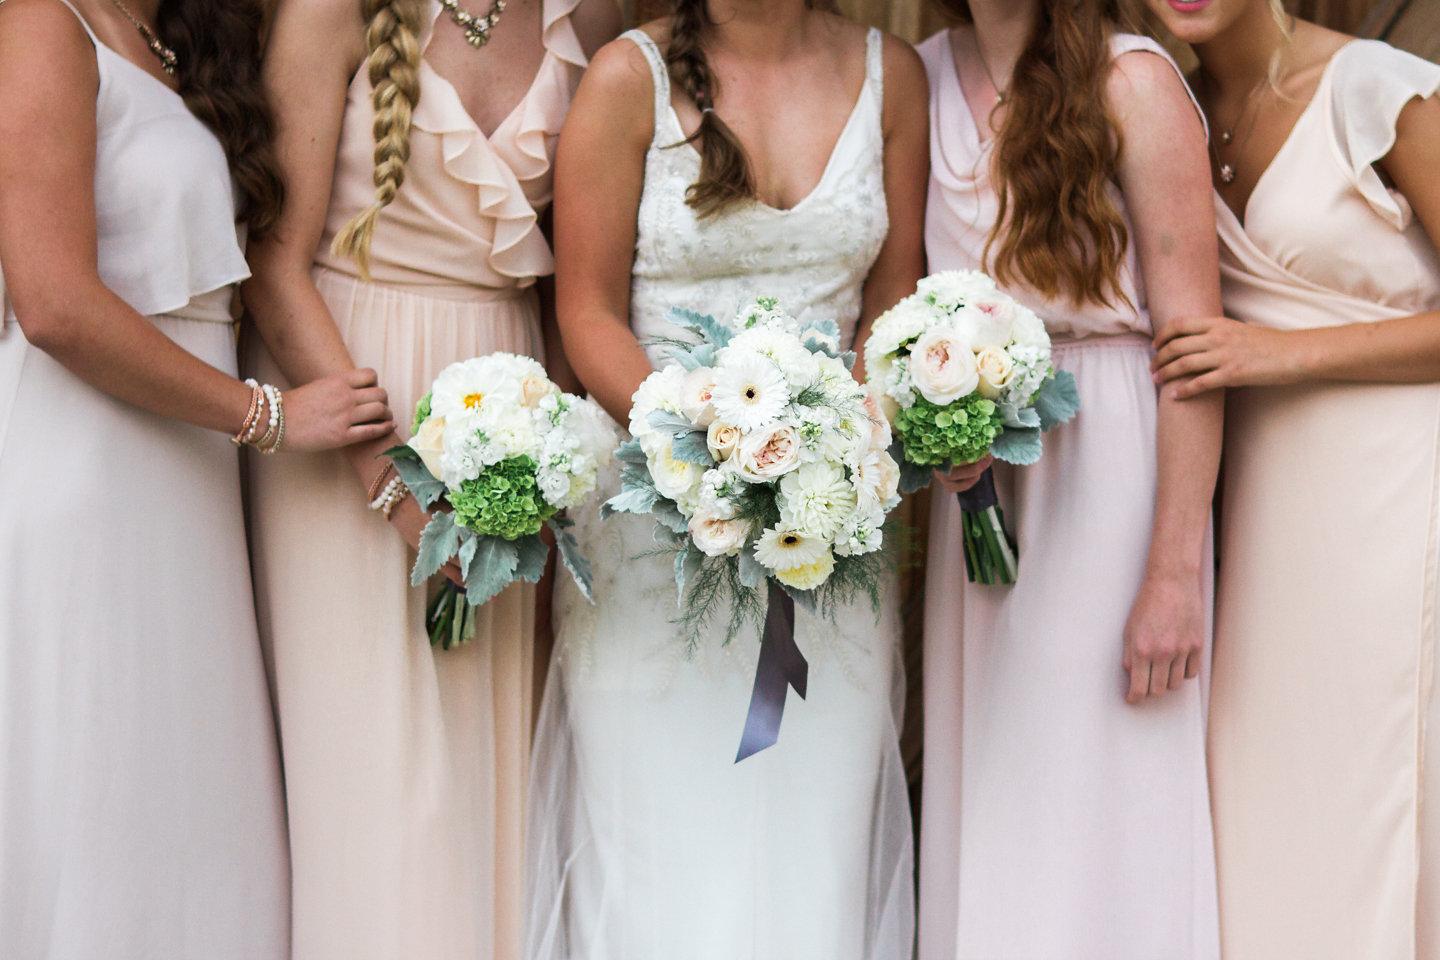 Blush and Peach Bridal Party